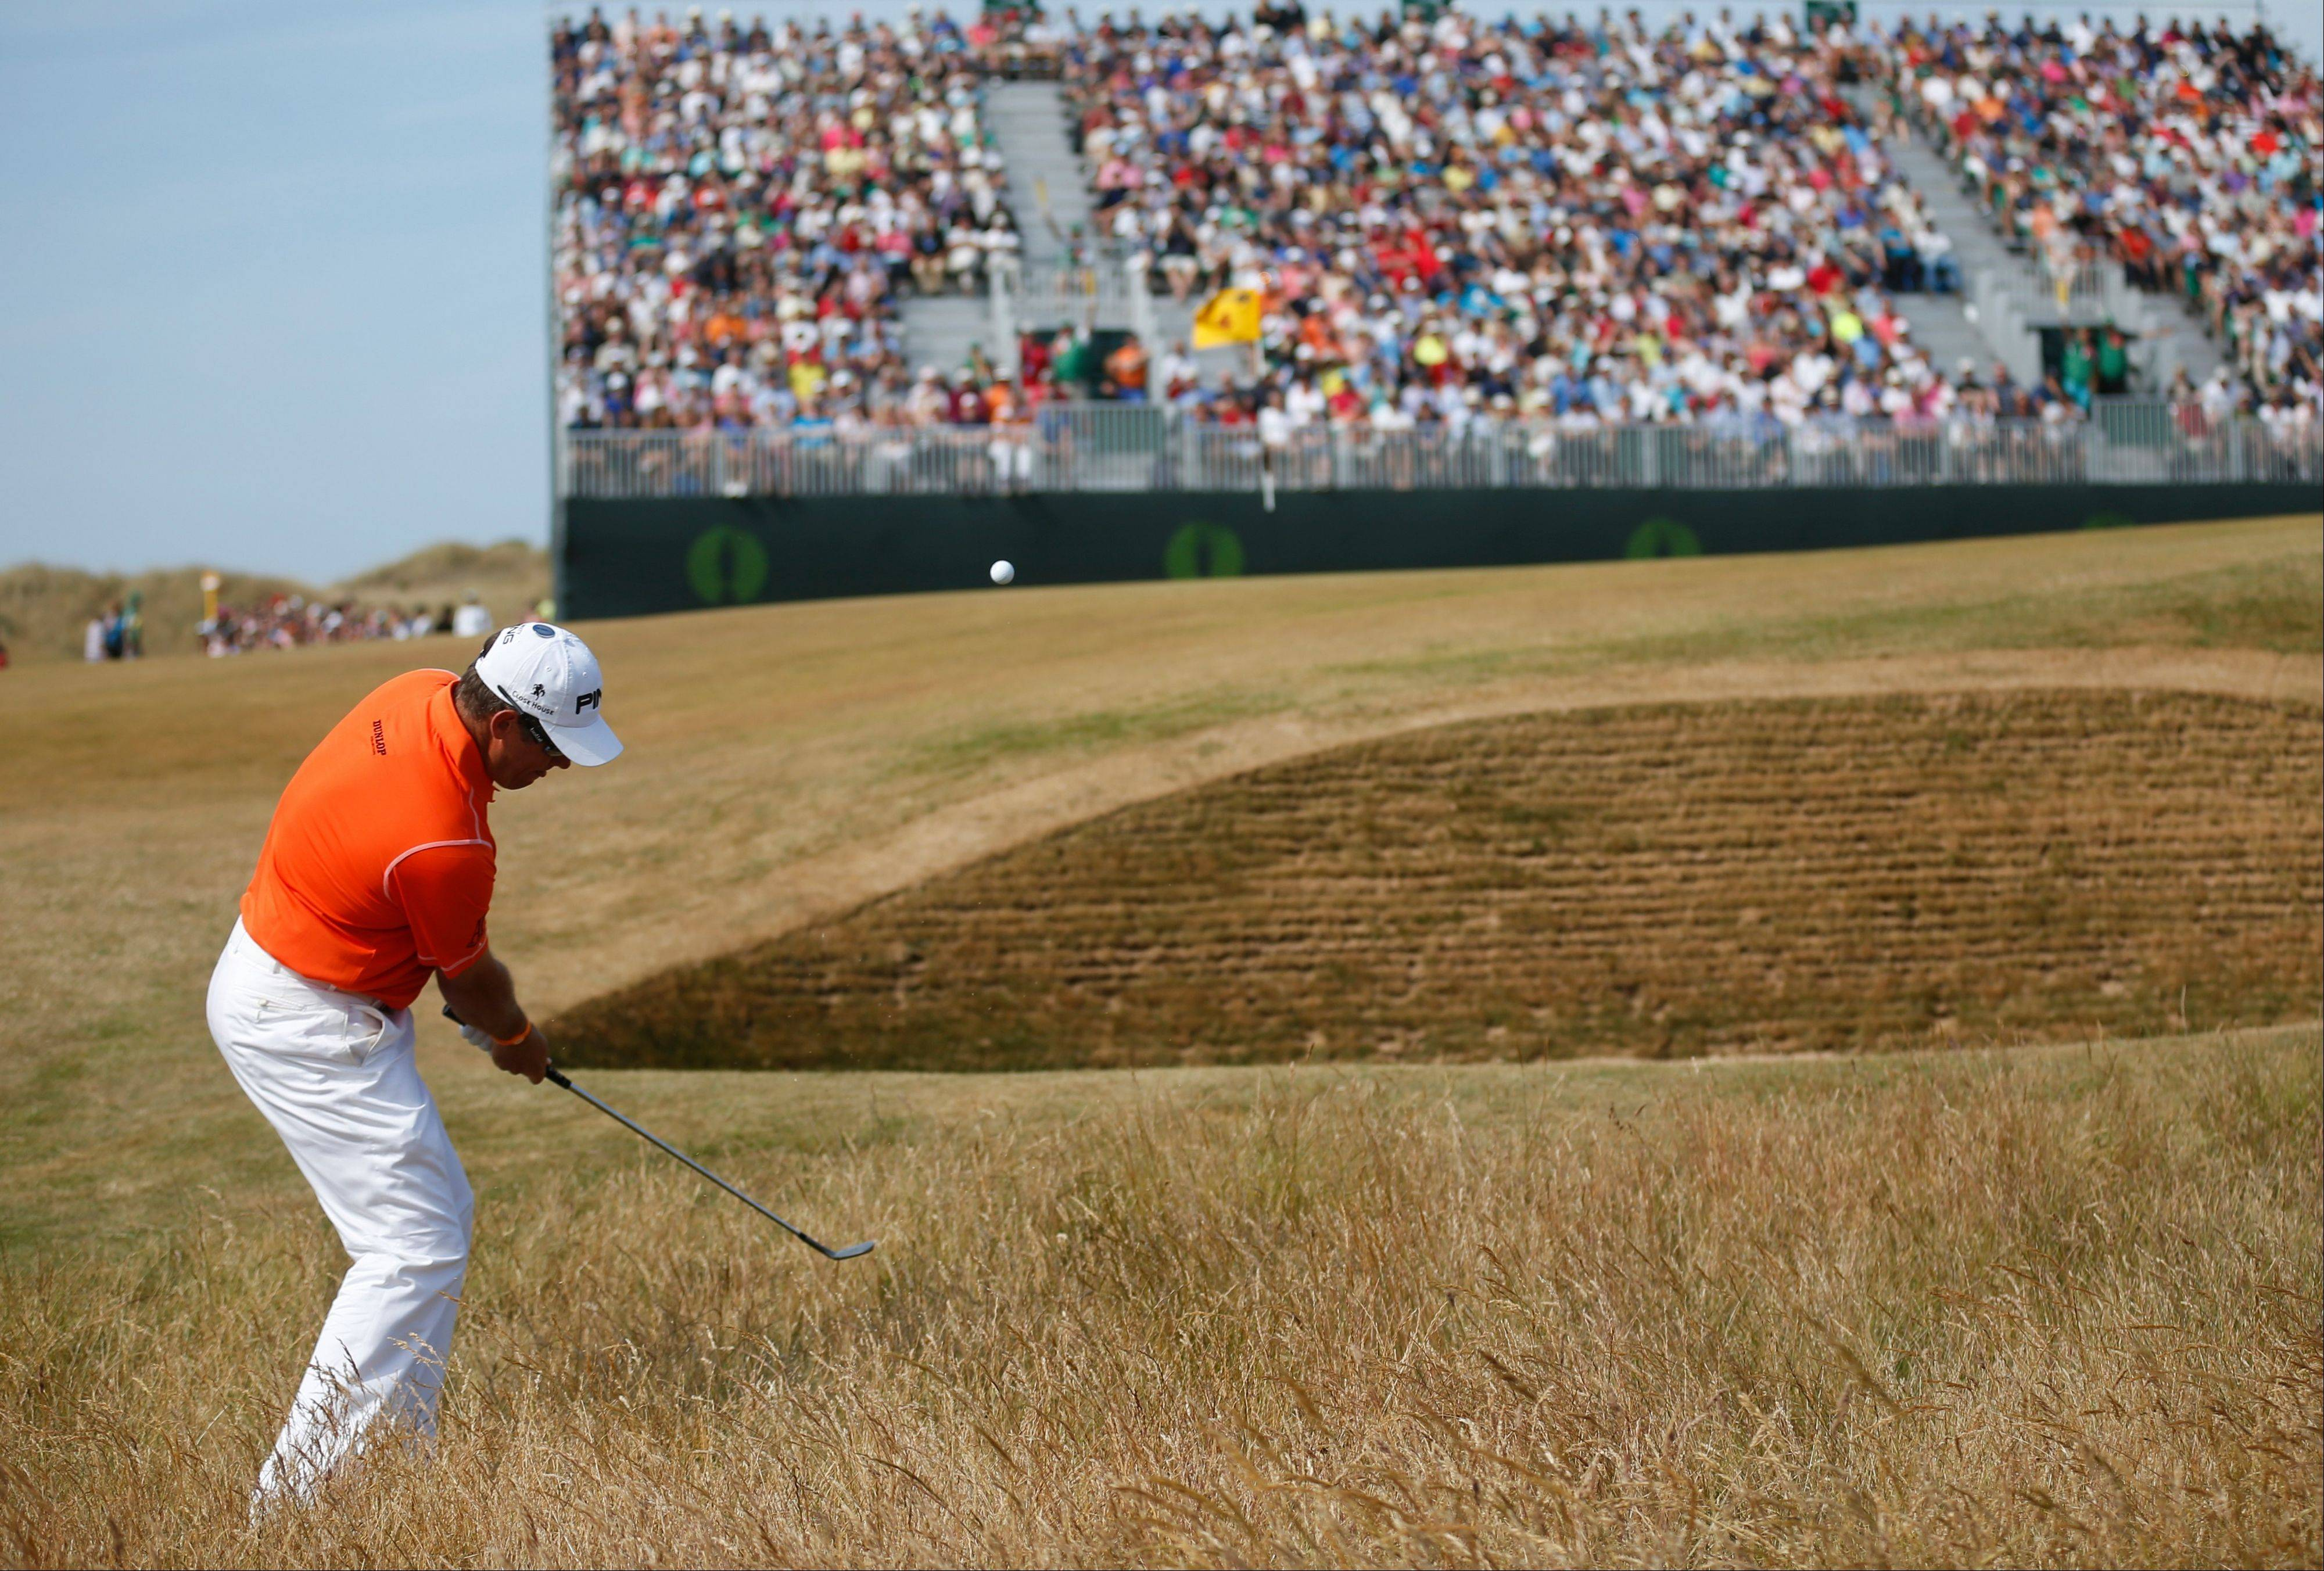 Lee Westwood of England plays a shot on the 4th hole during the third round of the British Open Golf Championship at Muirfield, Scotland.